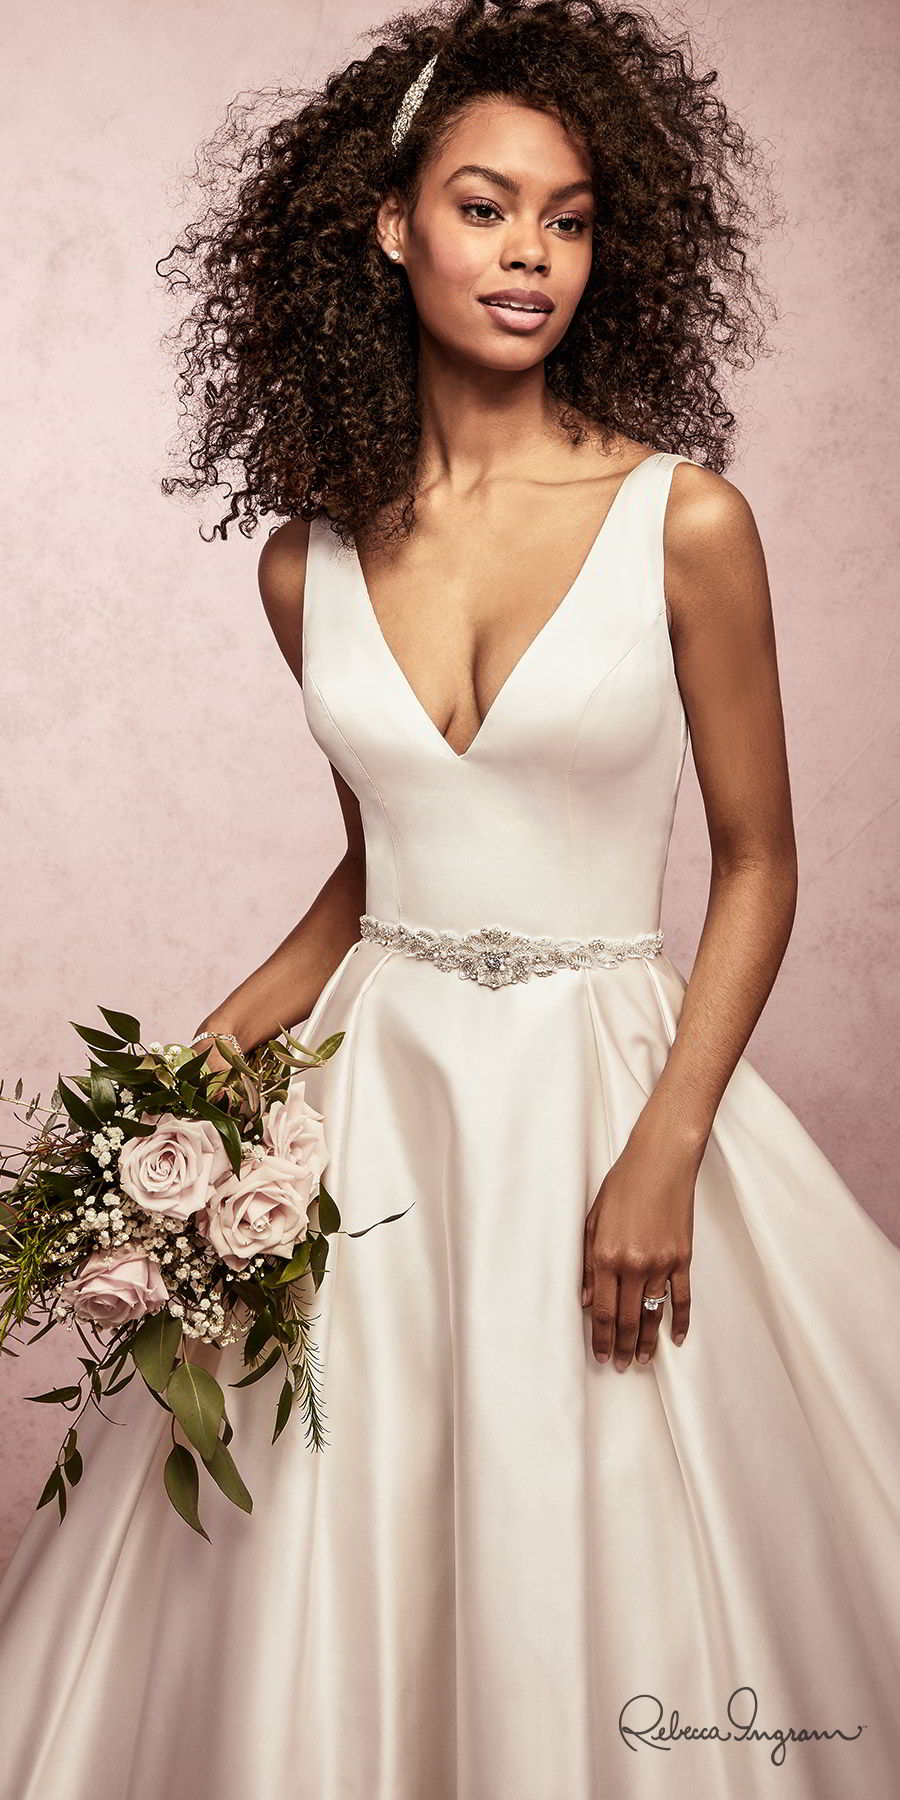 Maggie Sottero Designs Trend Report 2019 These Wedding Dresses